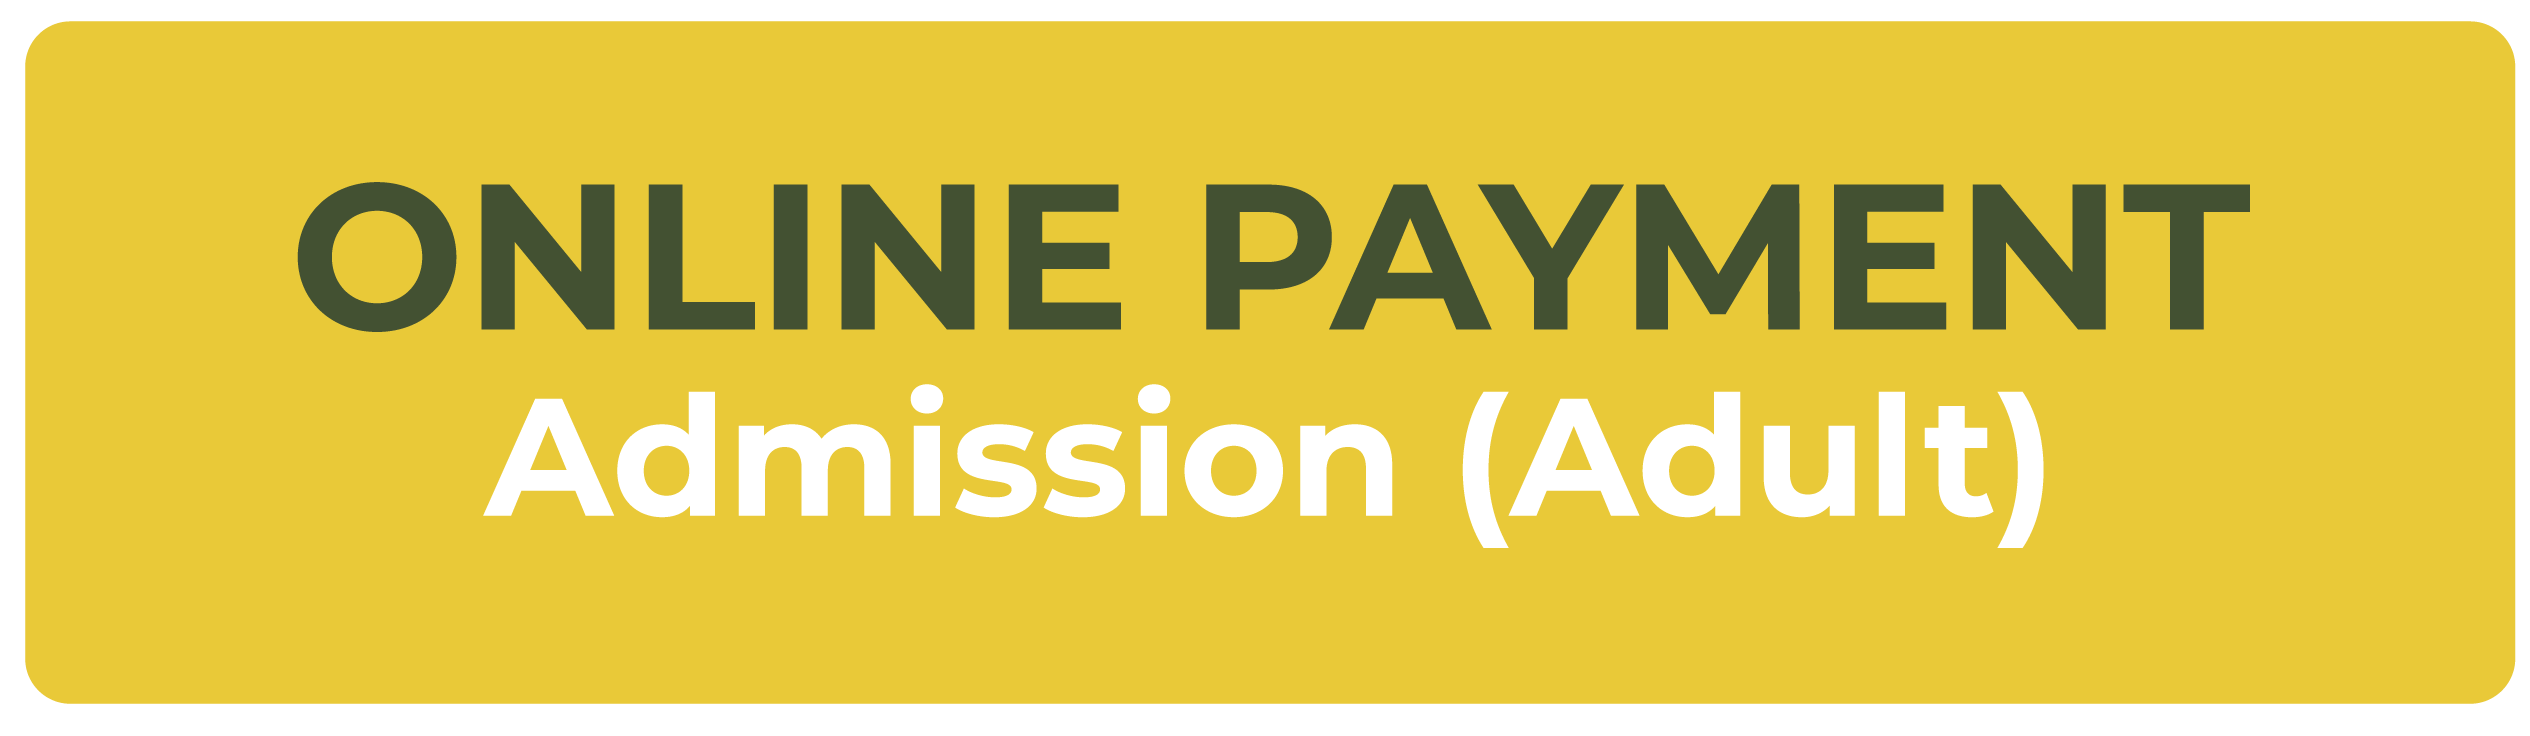 Online Payment Admission (Adult)